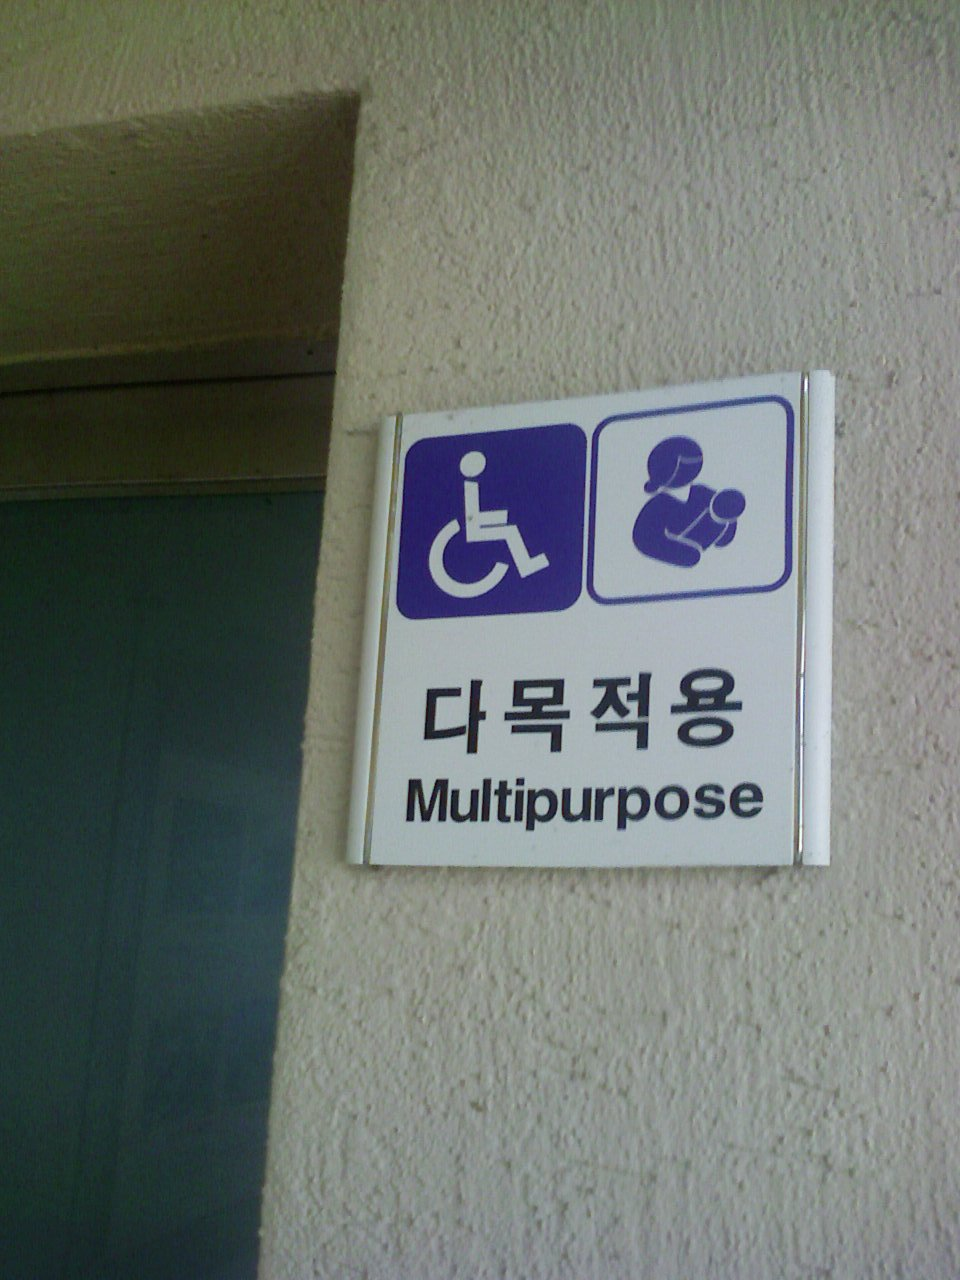 Multipurpose Toilet (for the disabled, the senior, and for diaperring), at ImWon Port